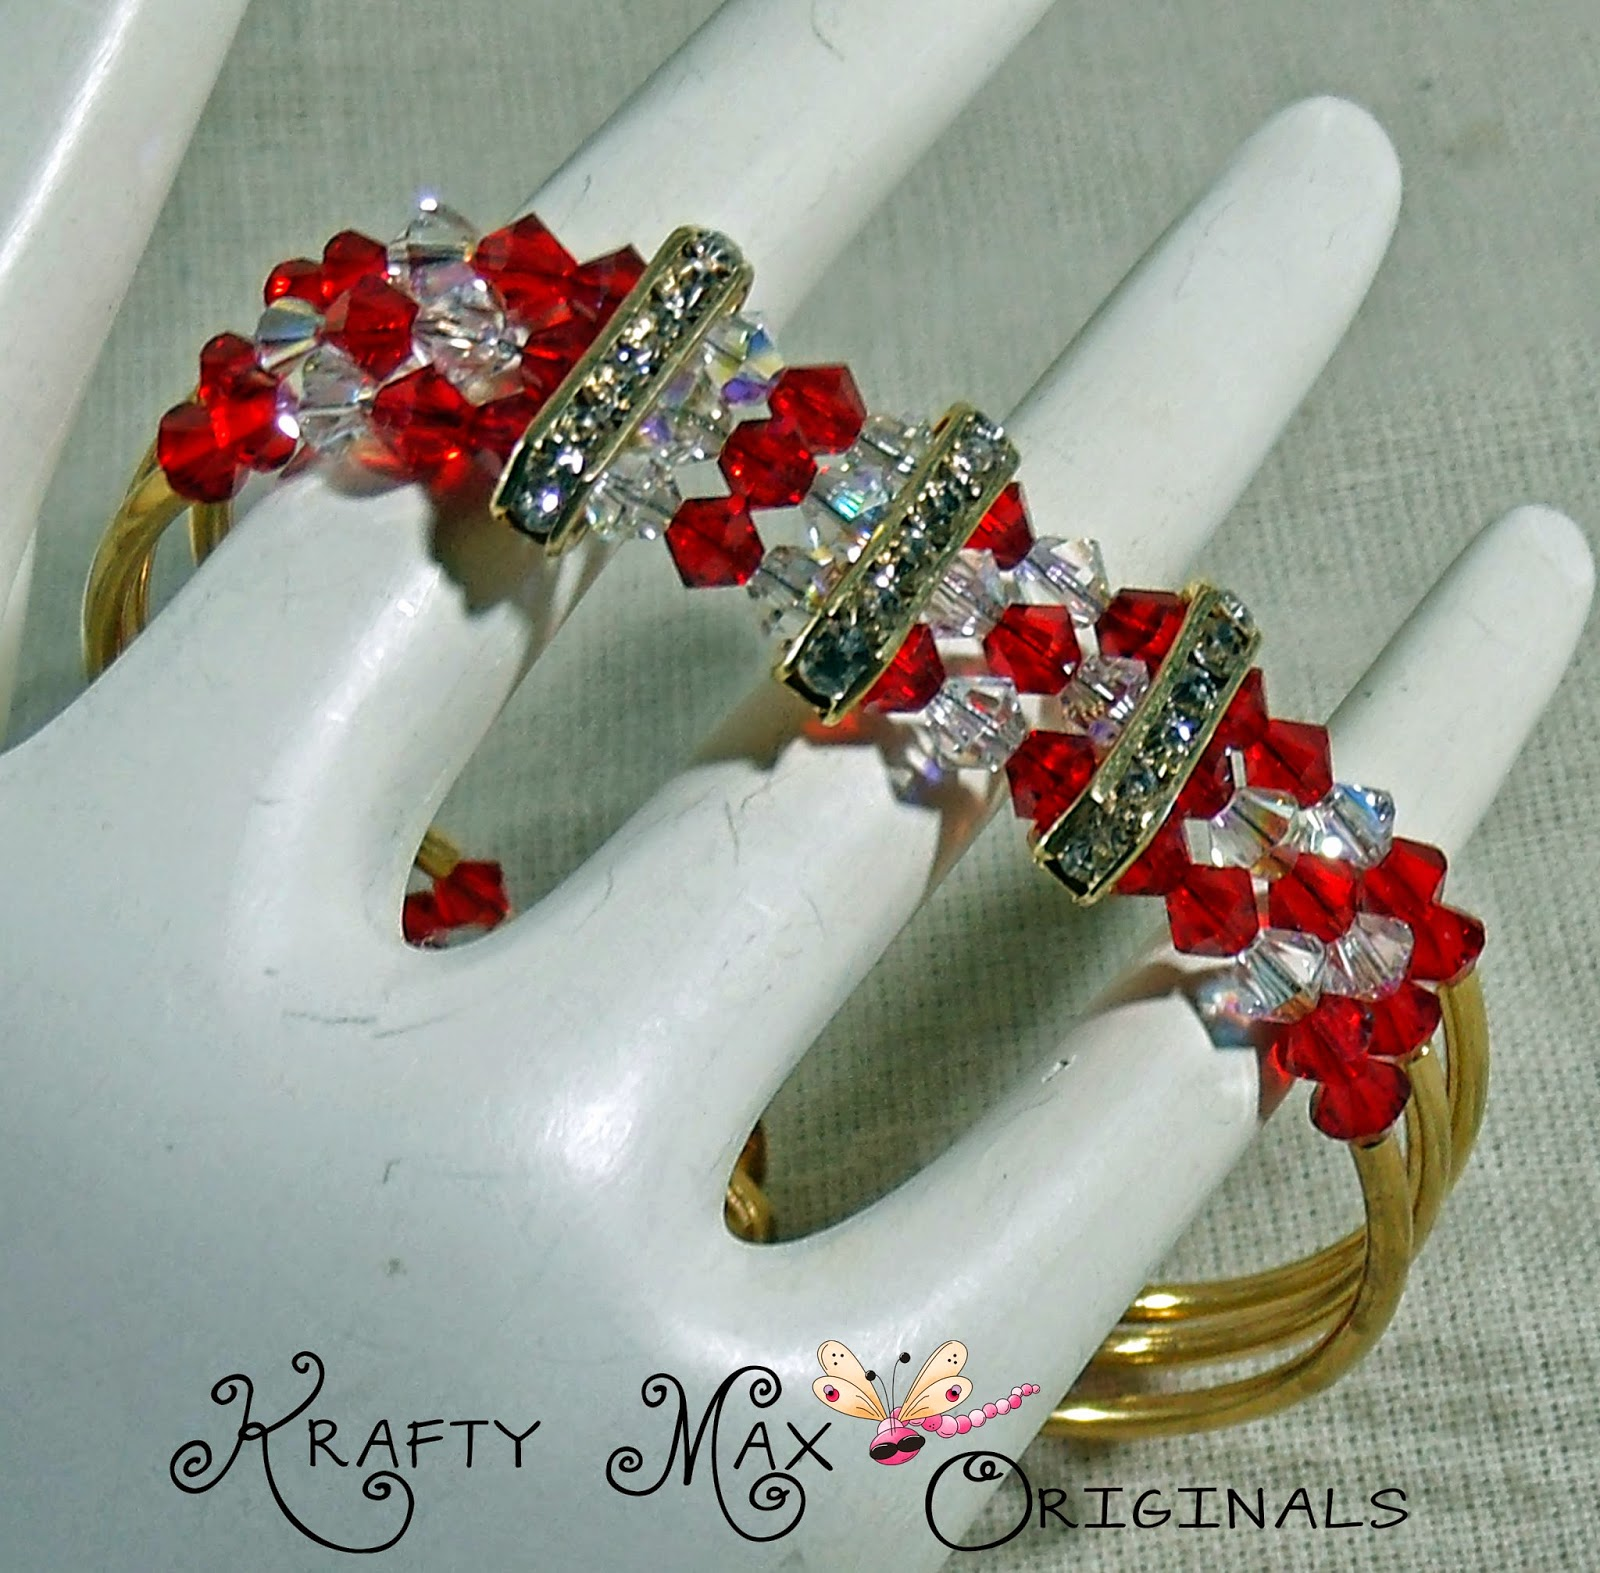 http://www.lajuliet.com/index.php/2013-01-04-15-21-51/ad/beaded,49/exclusive-red-and-clear-swarovski-crystal-and-gold-plated-triple-strand-bracelet-a-krafty-max-original-design,344